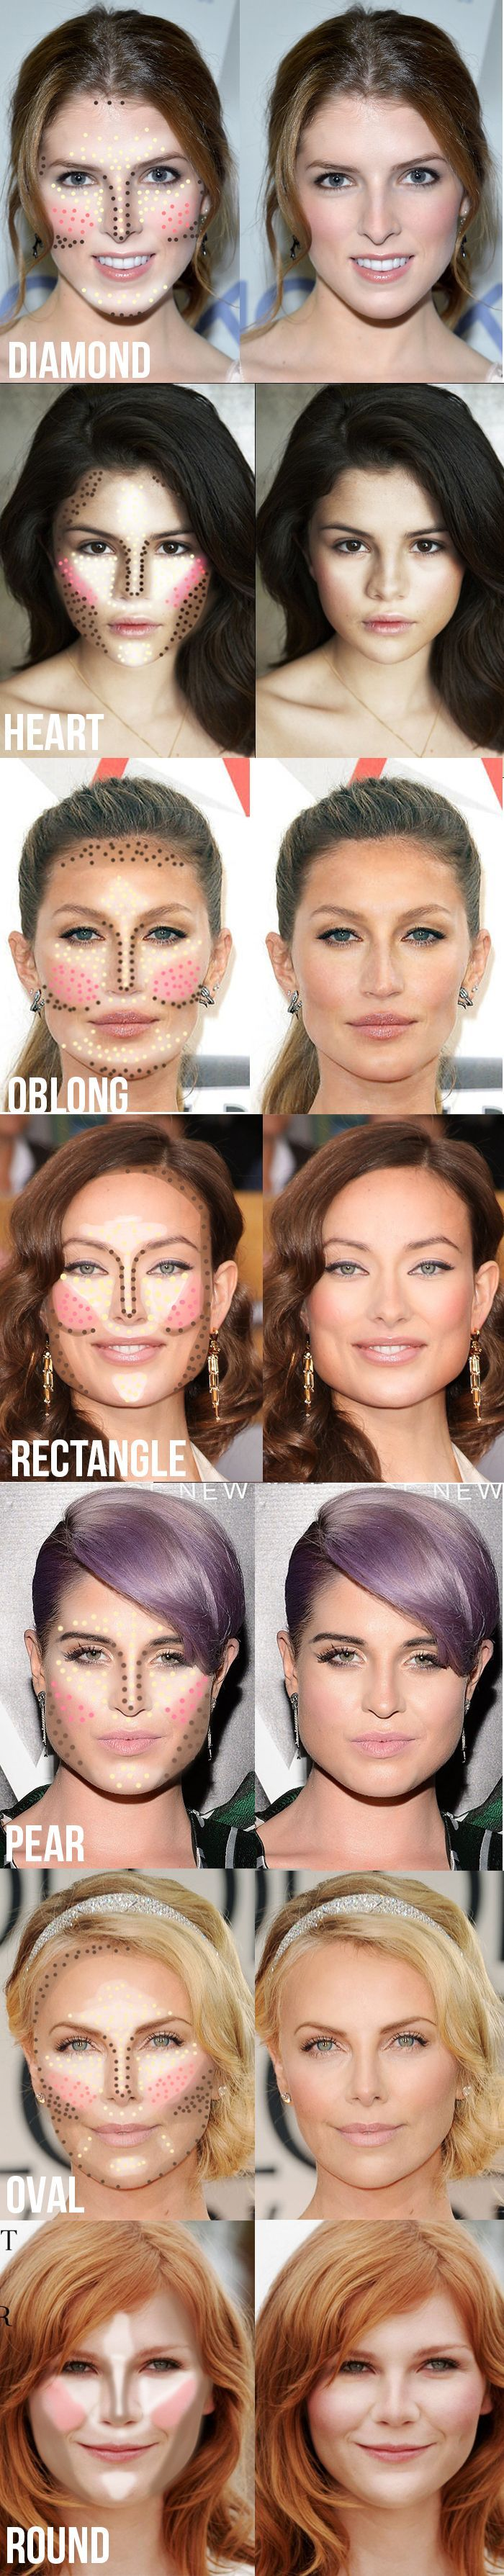 Highlighting and contouring guide for your face shape! It really makes a difference! #contour #highlight #blush #makeup #tips #tricks #beauty #DIY #doityourself #tutorial #stepbystep #howto #practical #guide #contouring